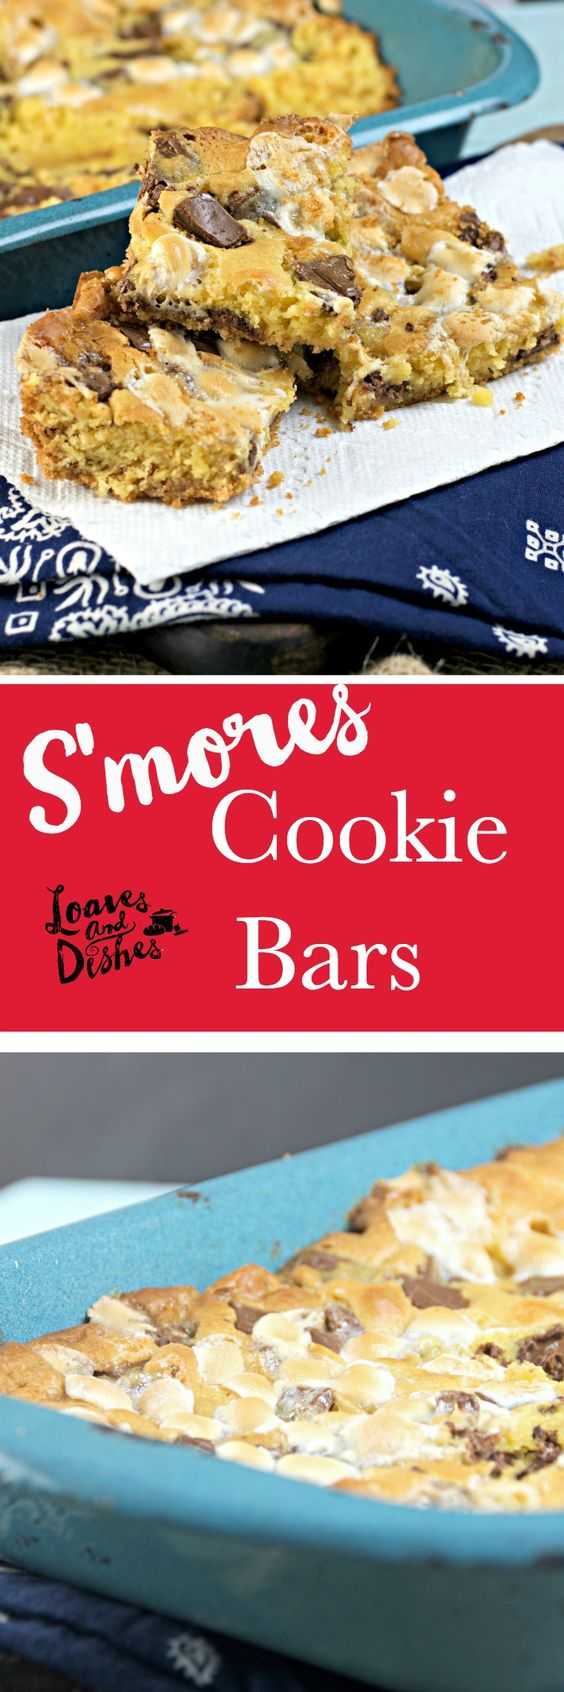 Simple One Pan Cookies made in casserole dish. Delicious reminder of S'mores. Cookies ready in 20 minutes. Easy. Simple Recipe. Perfect for kids and teens.